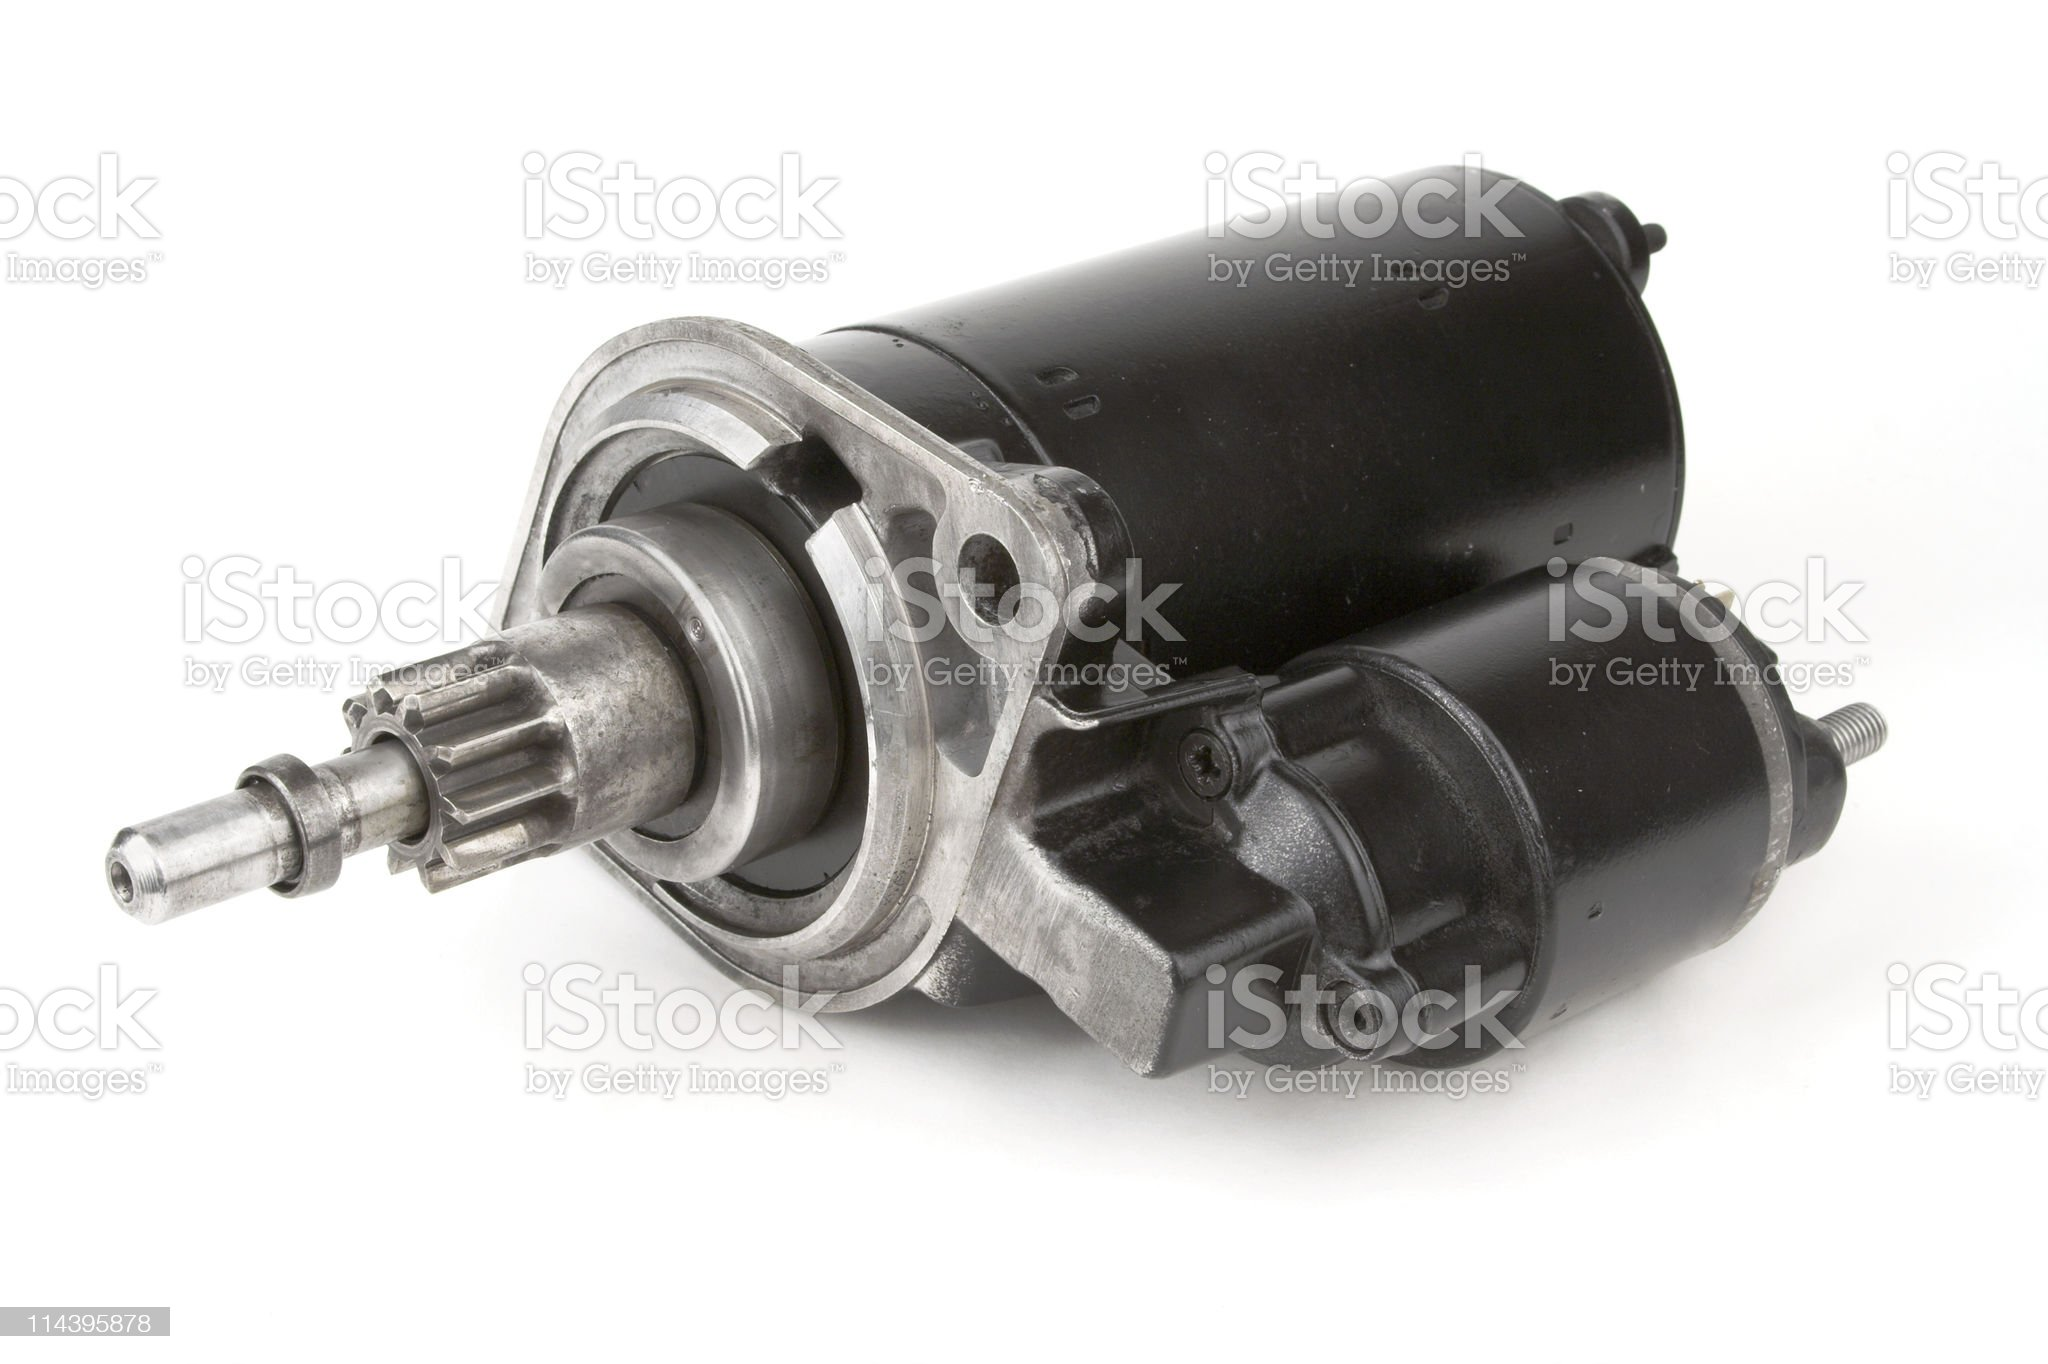 Reconditioned Car Starter Motor Front View royalty-free stock photo